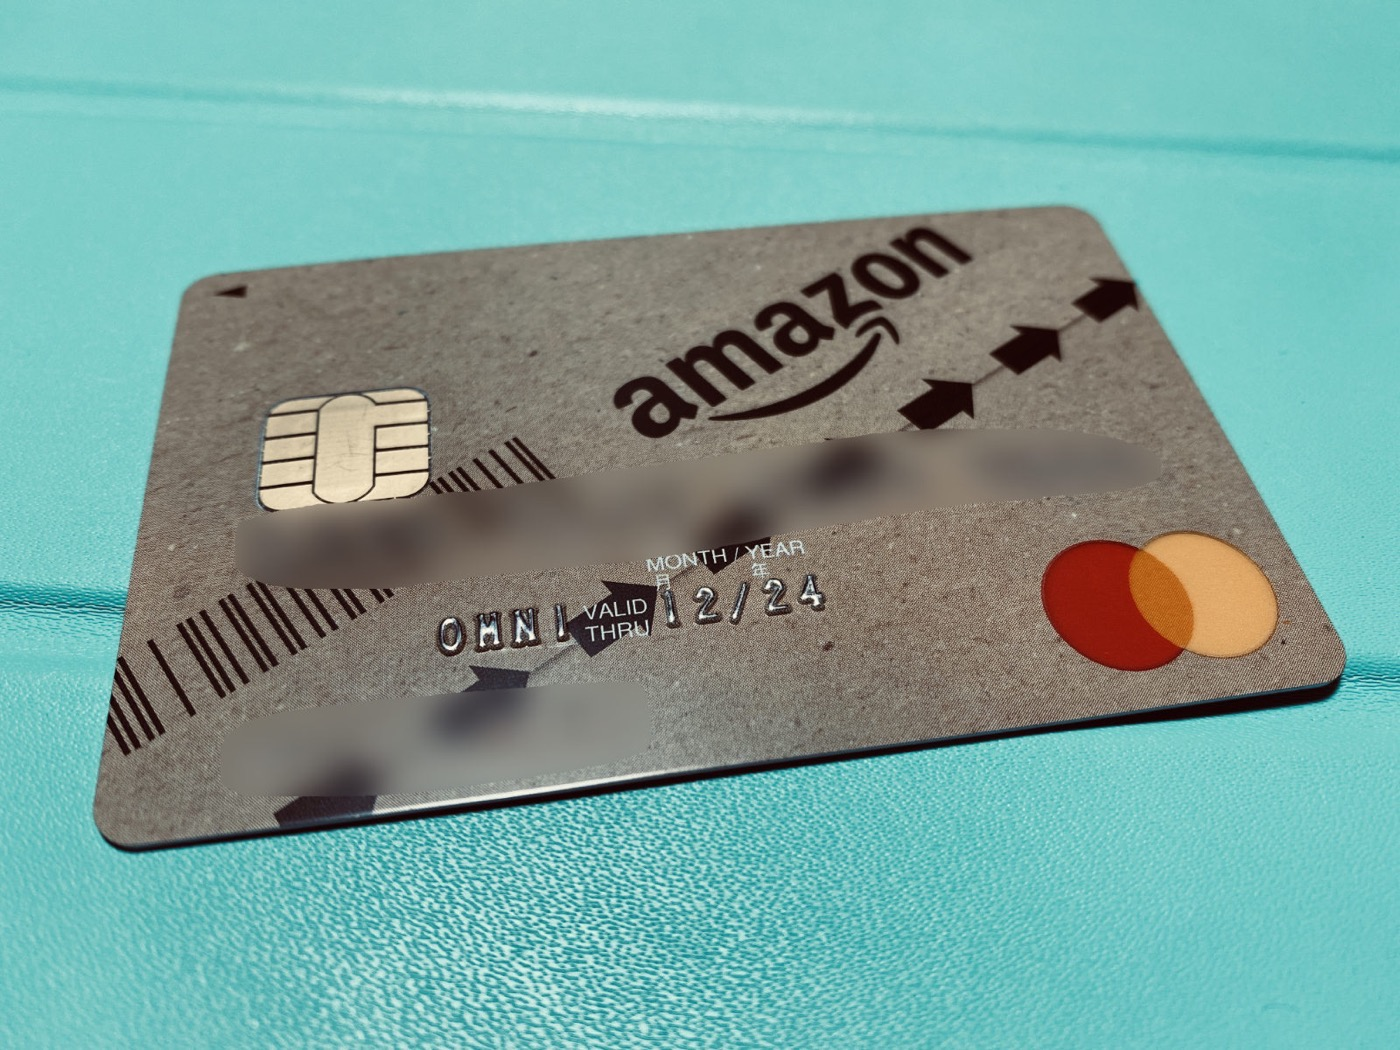 AuPay amazoncard charge 06